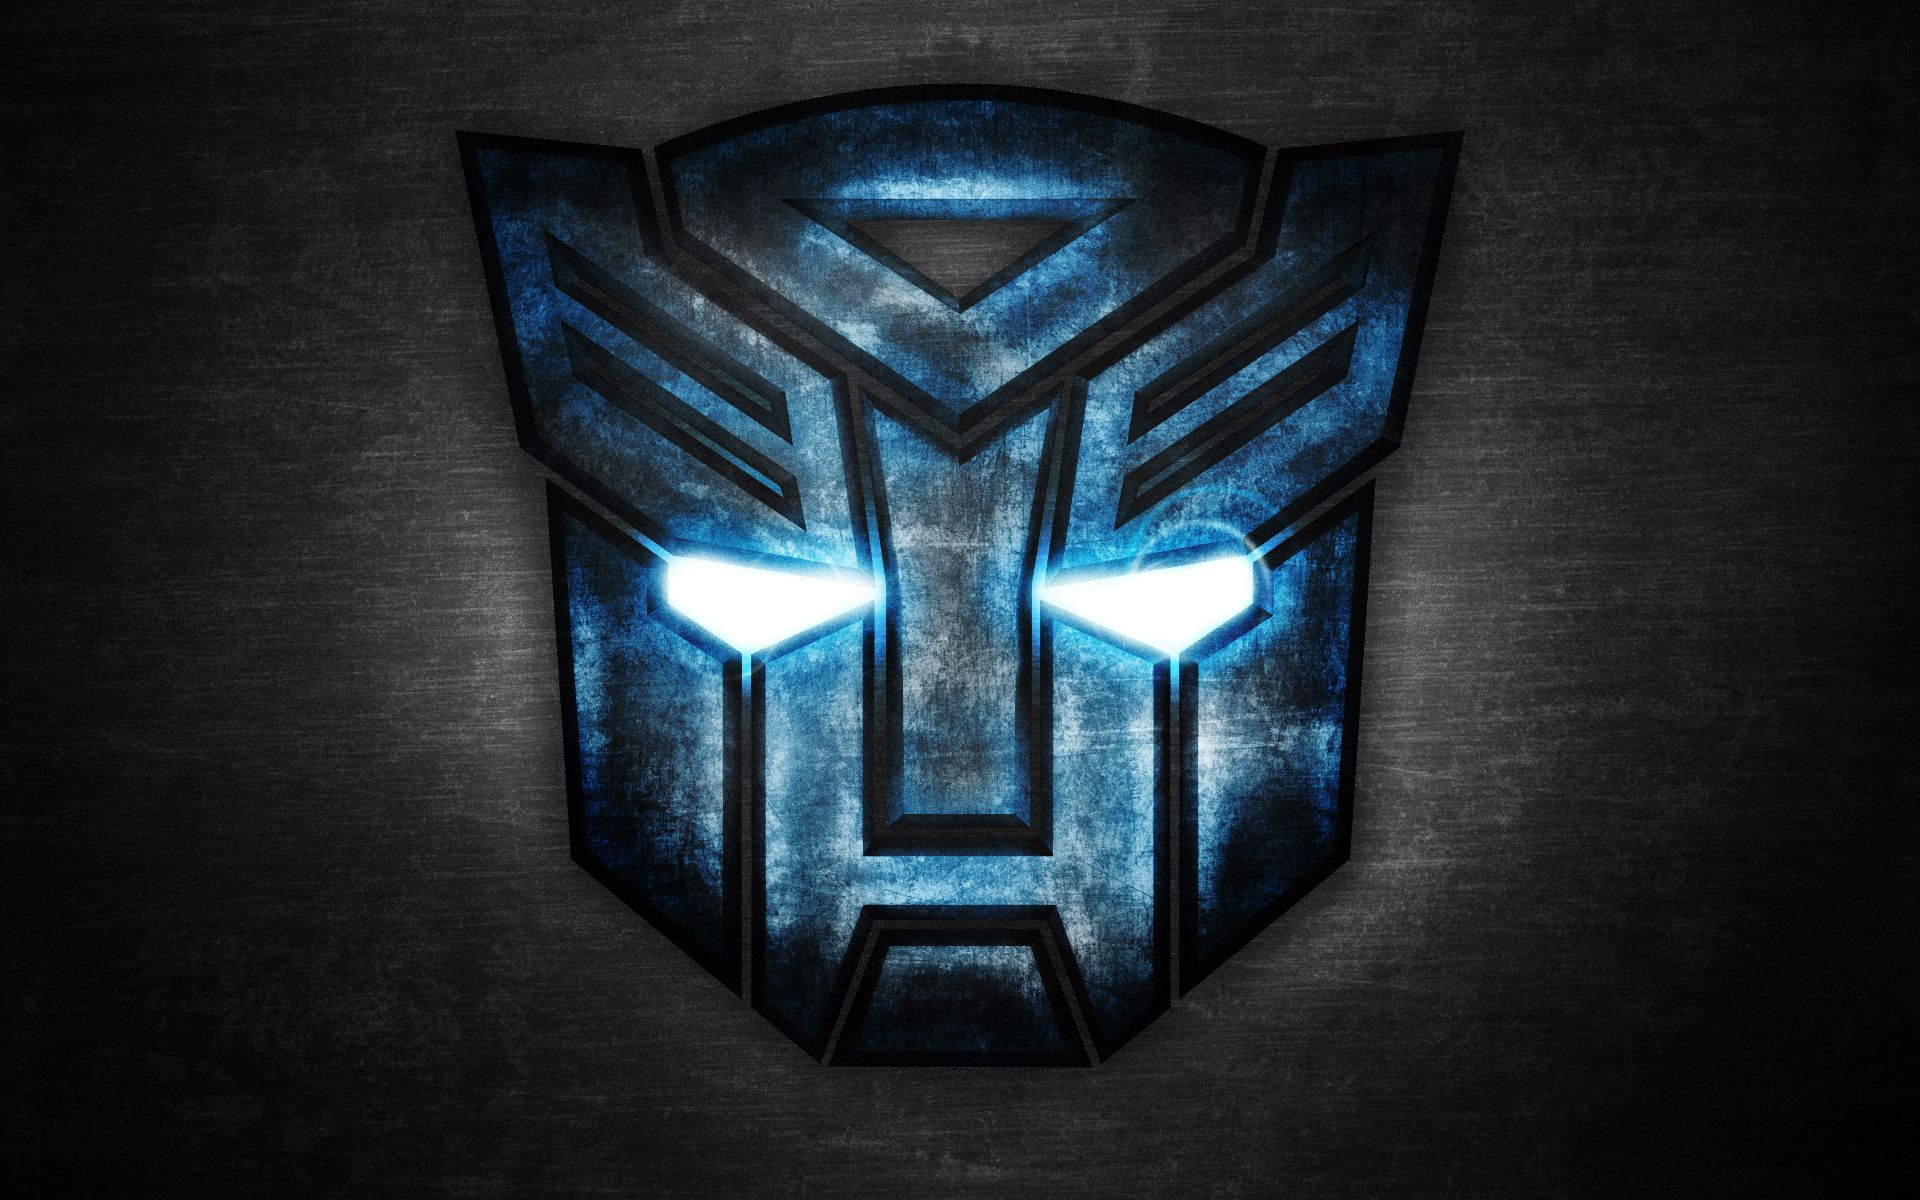 Hd Transformers Wallpapers Backgrounds For Free Download